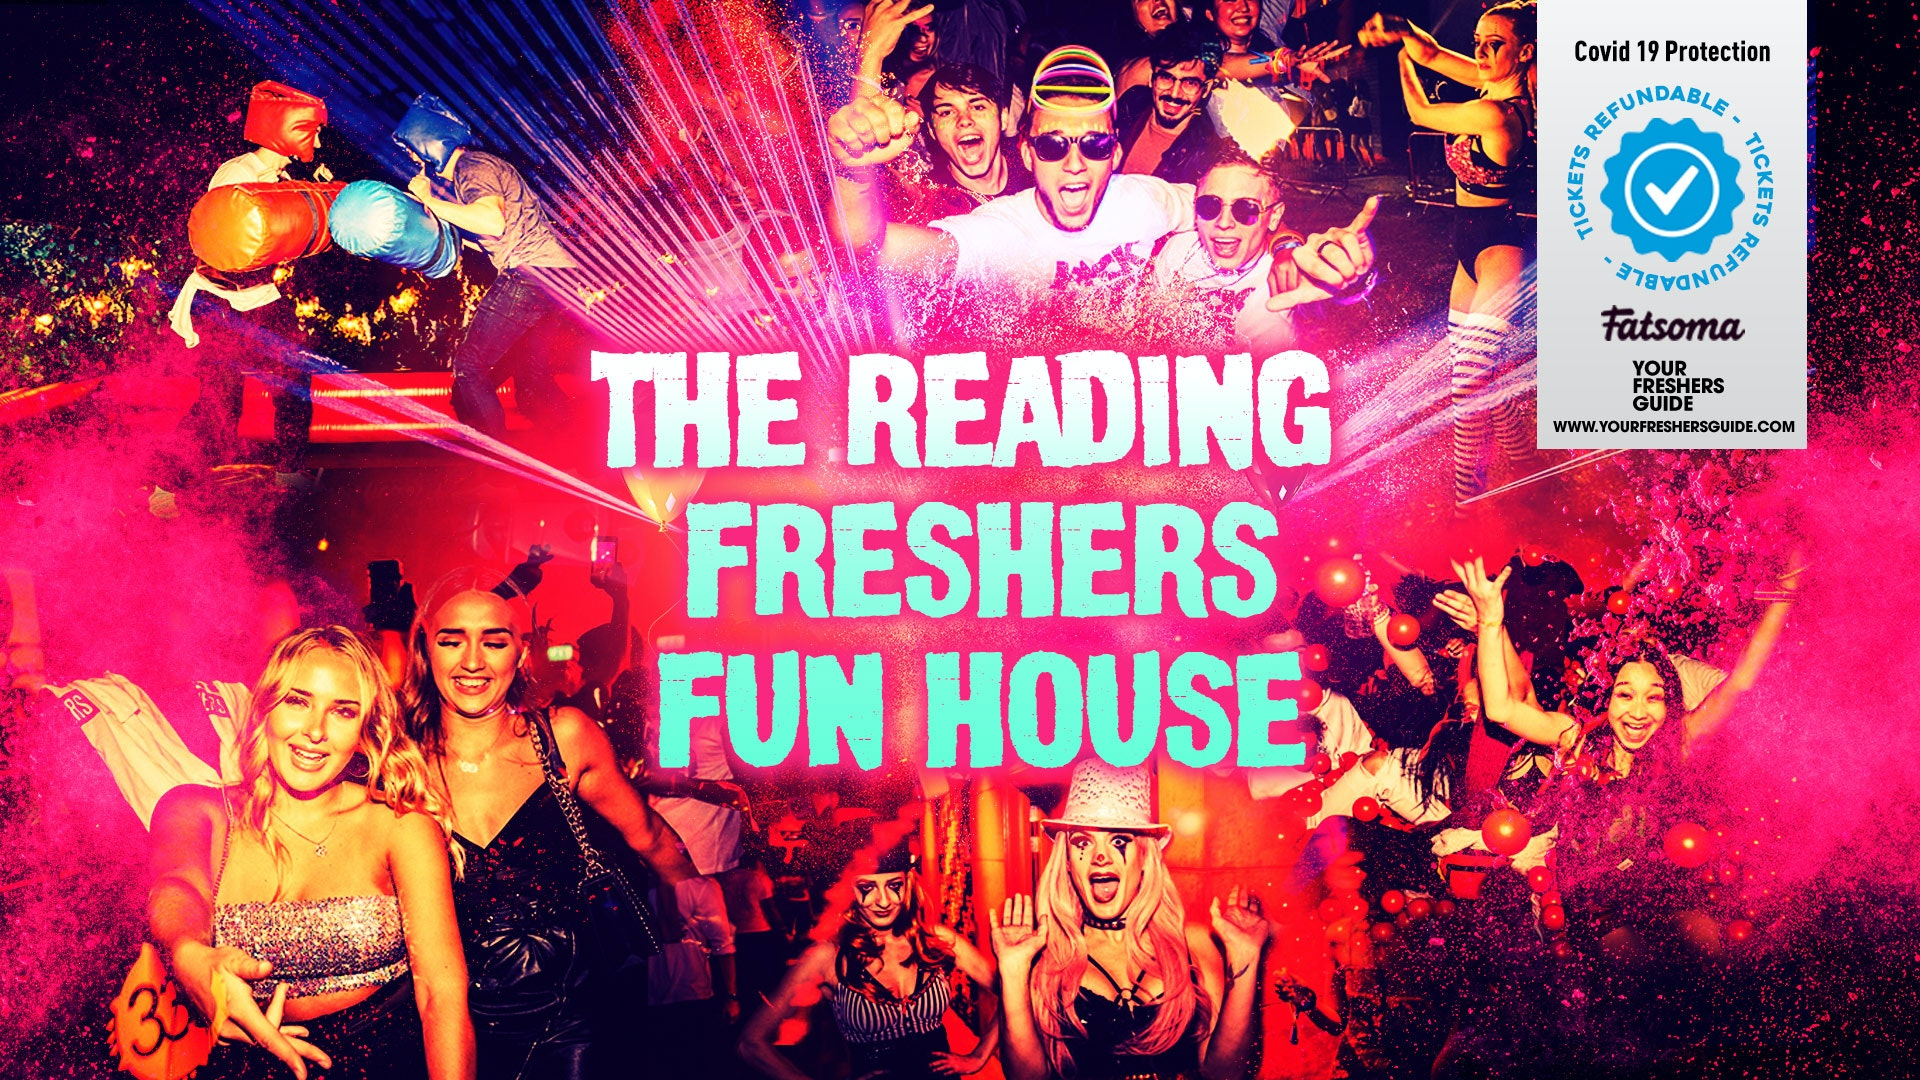 The Freshers Fun House | Reading Freshers 2021 – First 100 Tickets £3!